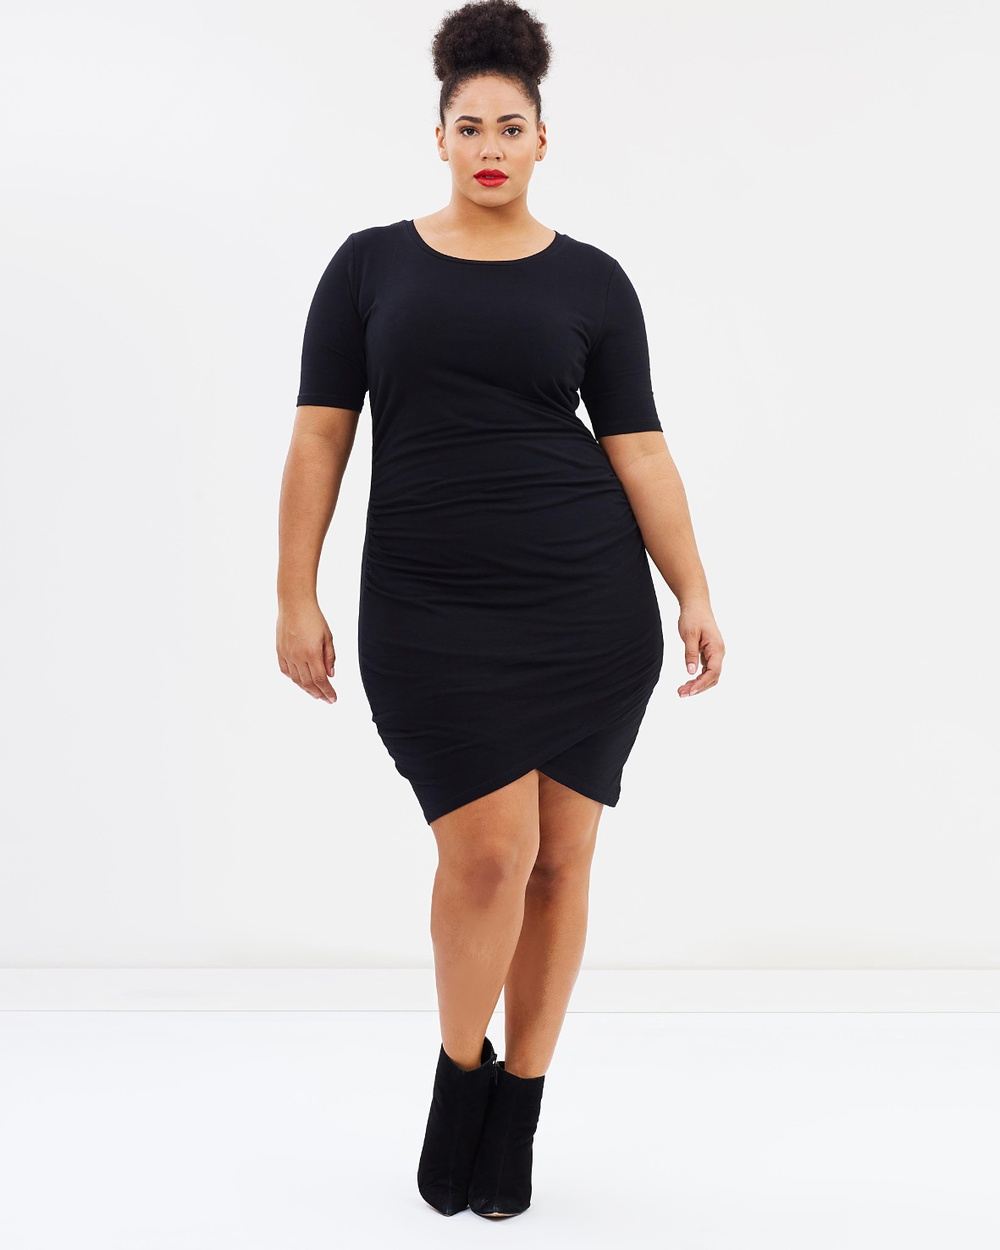 Atmos & Here Curvy ICONIC EXCLUSIVE Isla Gathered Jersey Dress Bodycon Dresses Black ICONIC EXCLUSIVE Isla Gathered Jersey Dress